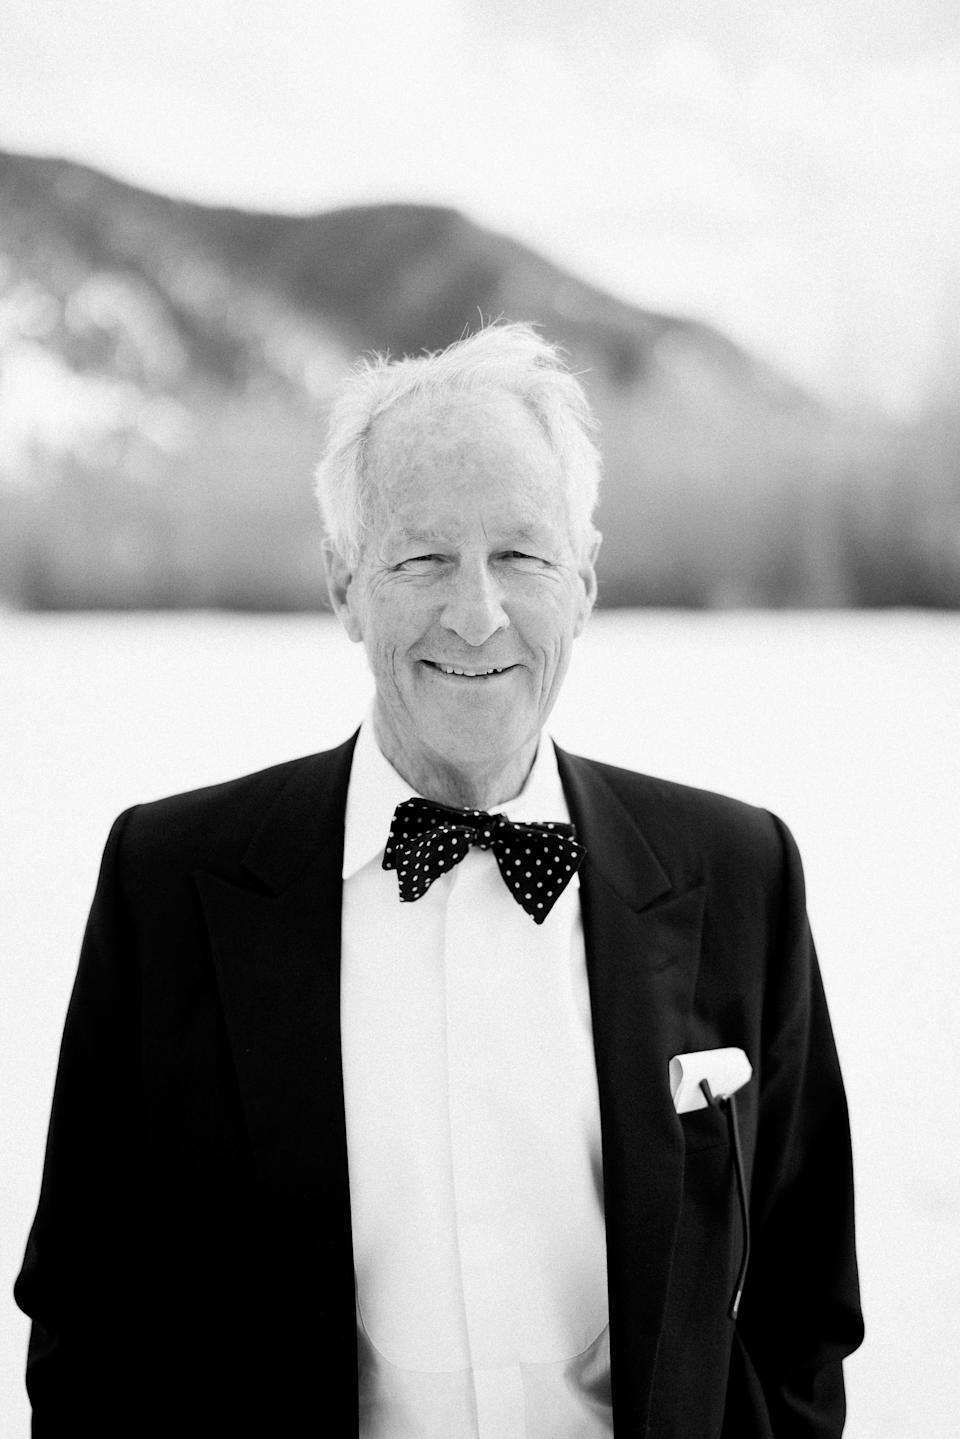 Michael Whitcomb, Peter's father. Is it odd that my favorite photo from our wedding is of my father-in-law? Such a beautiful portrait—it captures him perfectly. Michael opened our ceremony with a beautiful poem he wrote for Peter and me.